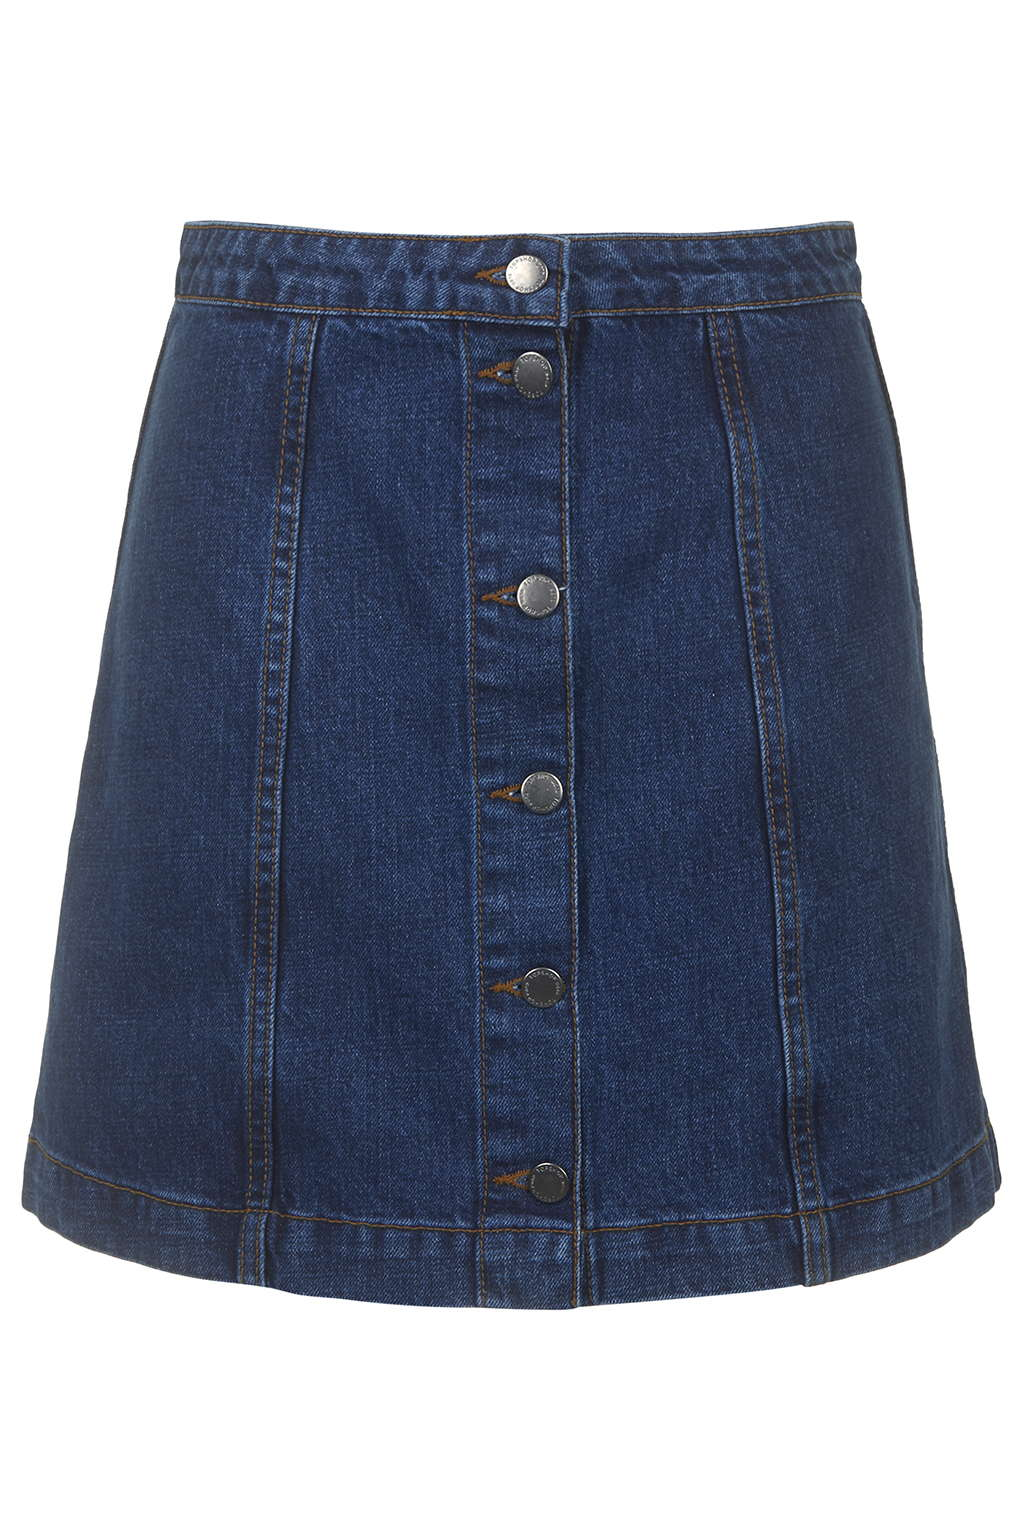 Button Front A-Line Skirt - Denim Dreamers - We Love